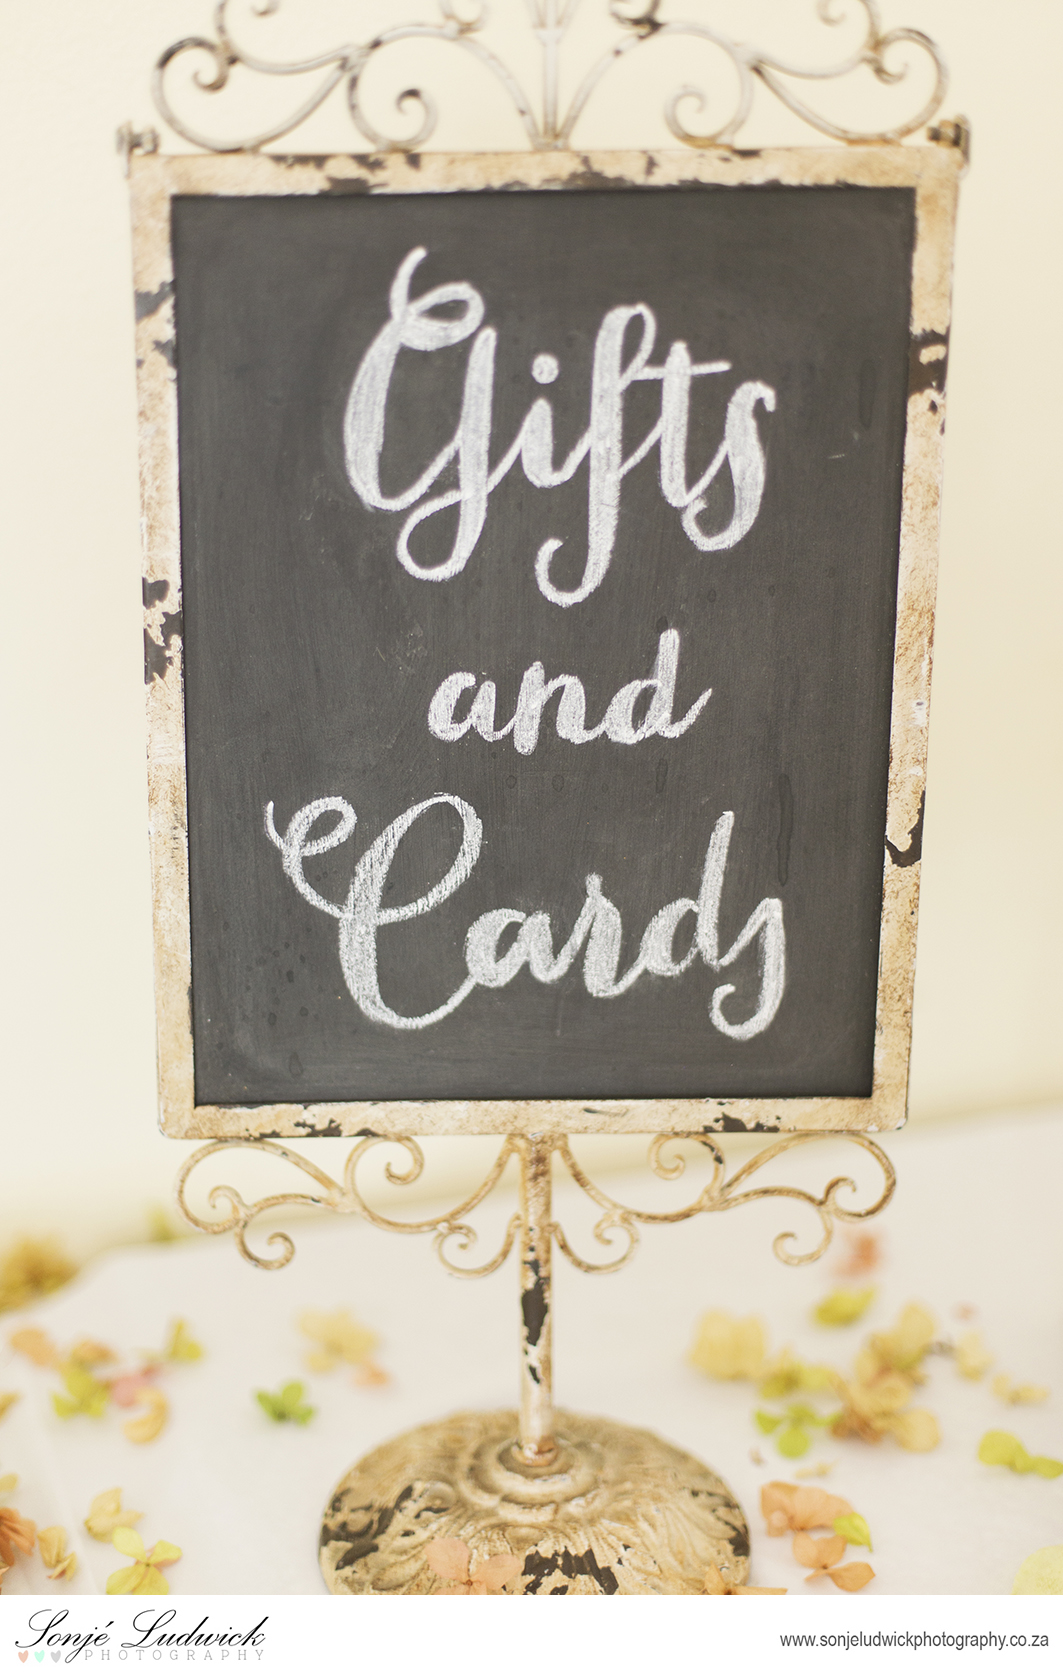 Vintage Black Board Displaying Gifts and Candy